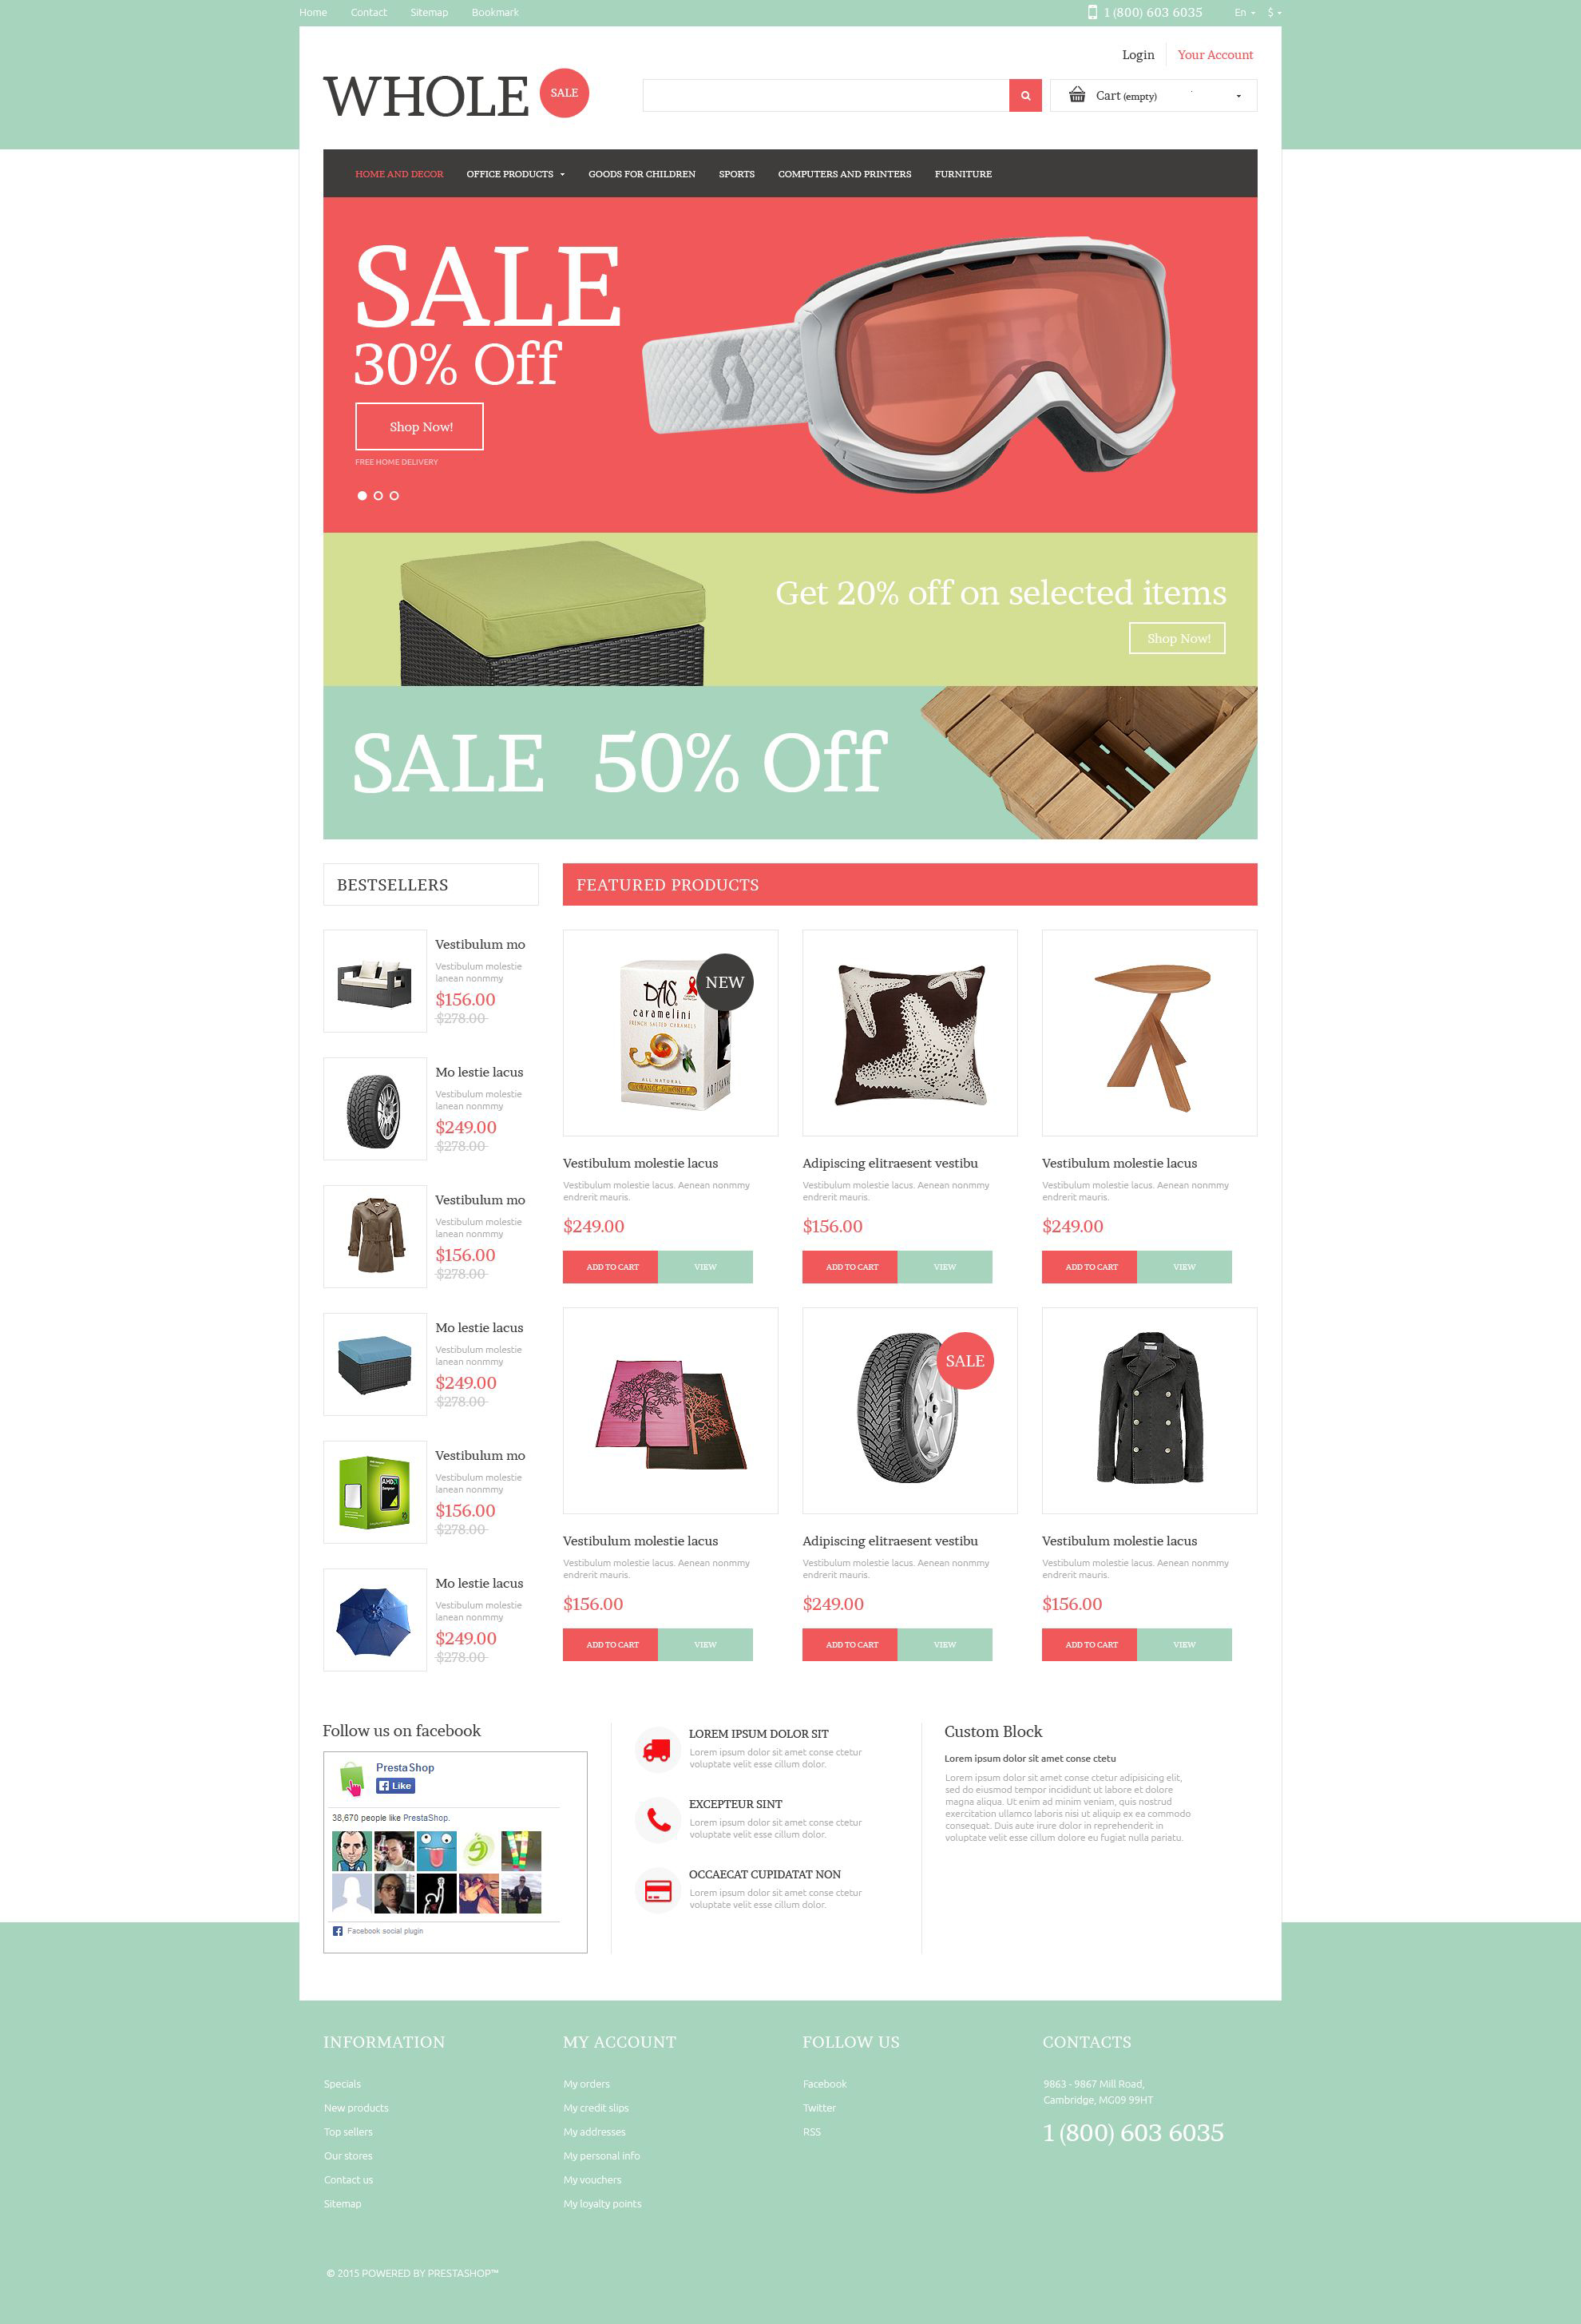 The Whole Sale Online Store PrestaShop Design 53282, one of the best PrestaShop themes of its kind (fashion), also known as whole sale online store PrestaShop template, clothes PrestaShop template, food PrestaShop template, electronics PrestaShop template, jewelry PrestaShop template, pricing PrestaShop template, baby PrestaShop template, accessories PrestaShop template, printers PrestaShop template, funeral PrestaShop template, furniture PrestaShop template, gifts PrestaShop template, decor PrestaShop template, beauty and related with whole sale online store, clothes, food, electronics, jewelry, pricing, baby, accessories, printers, funeral, furniture, gifts, decor, beauty, etc.